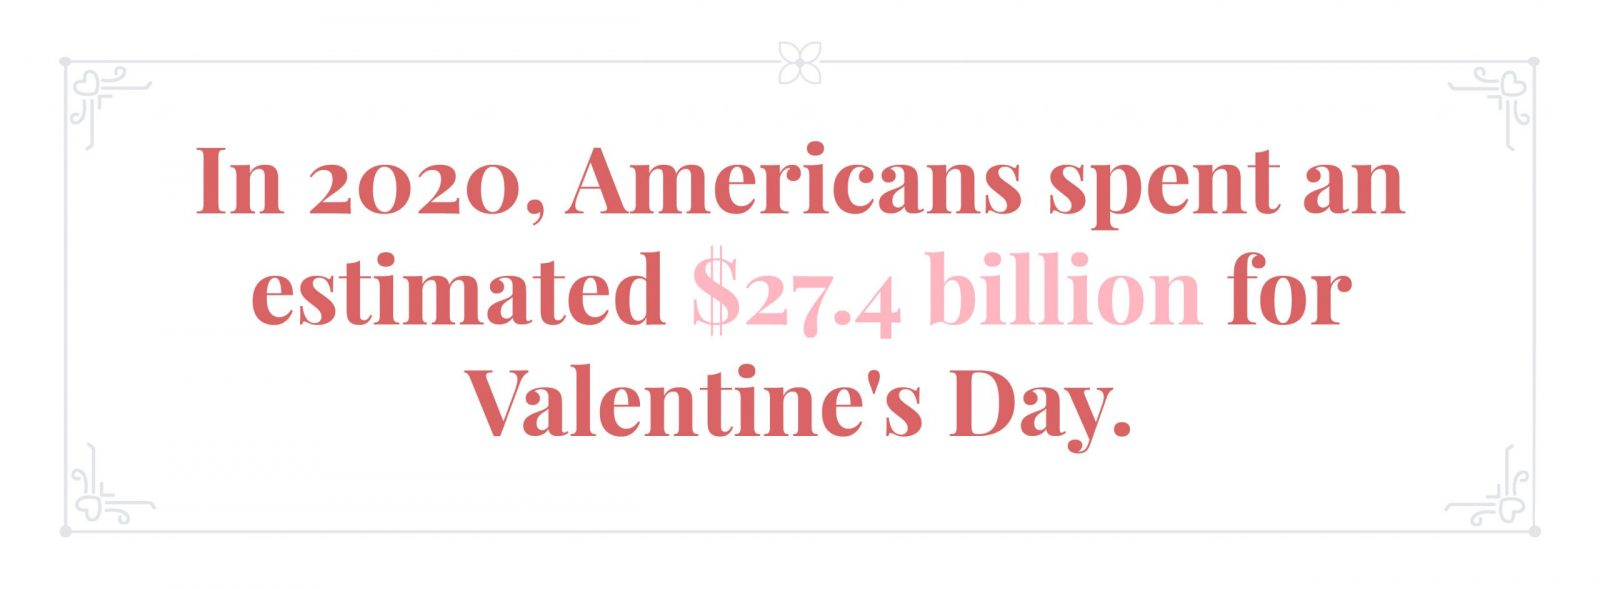 In 2020, Americans spent an average of $27.4 billion for Valentine's Day